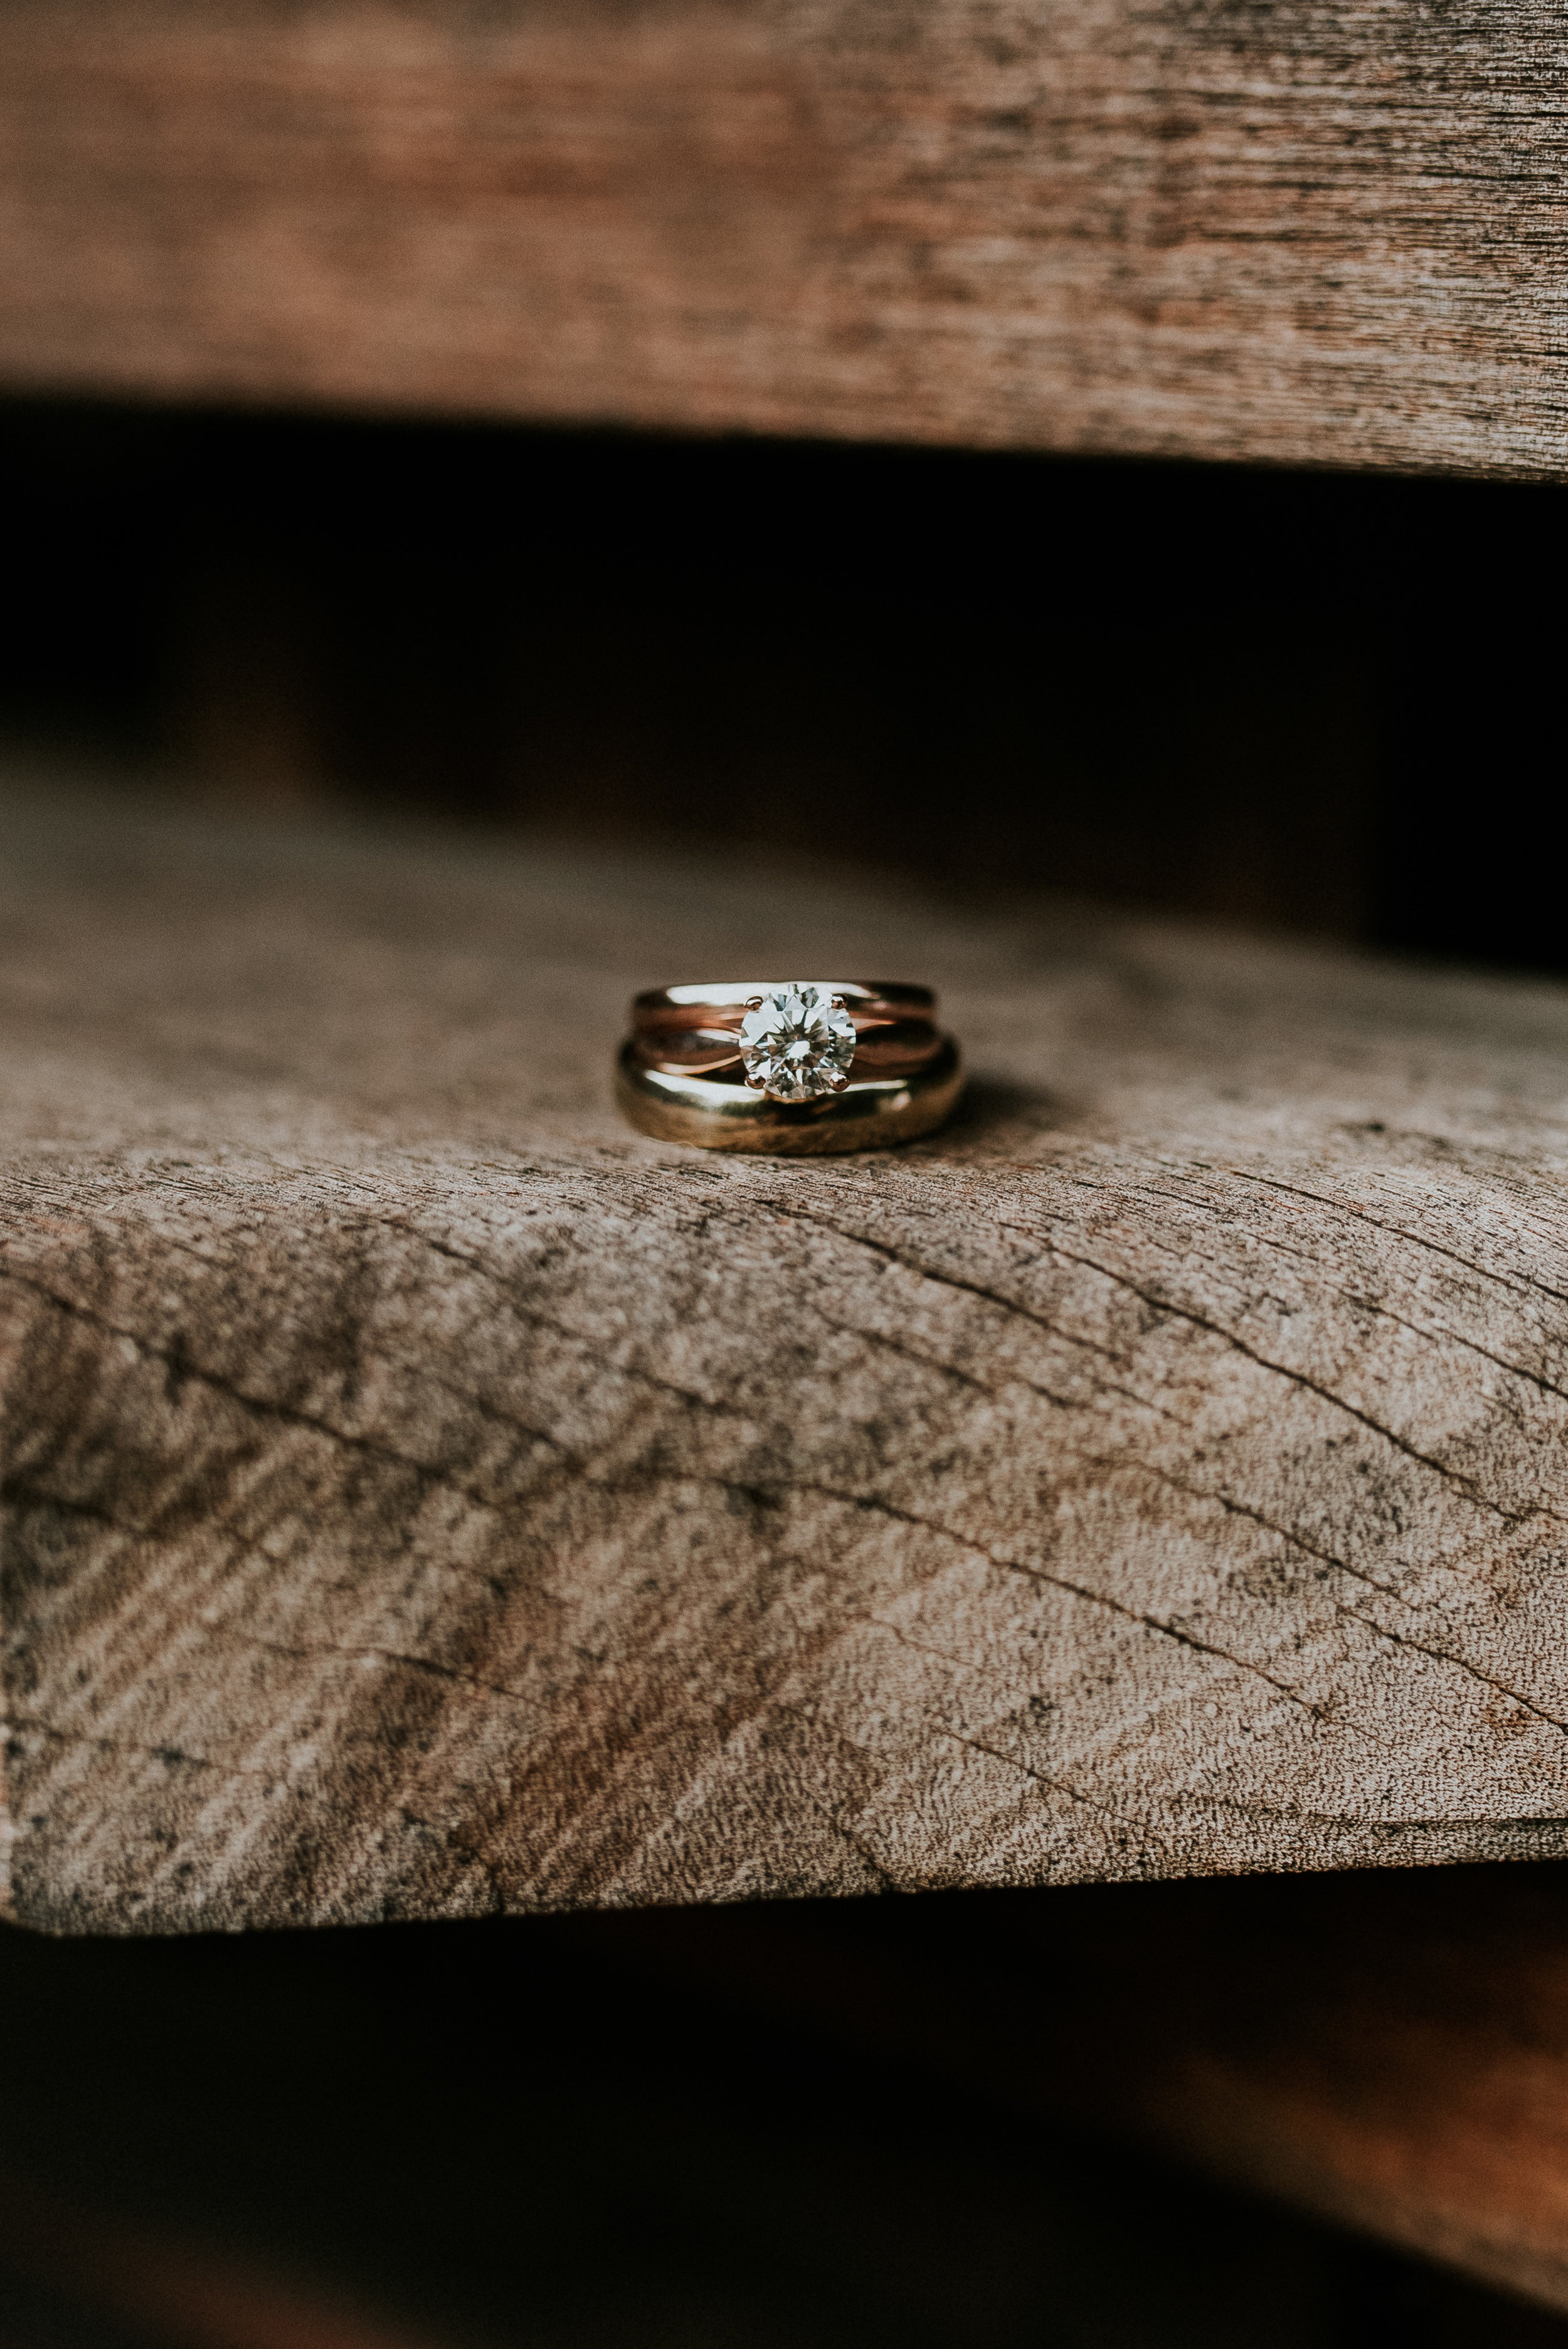 Close-up view of wedding rings